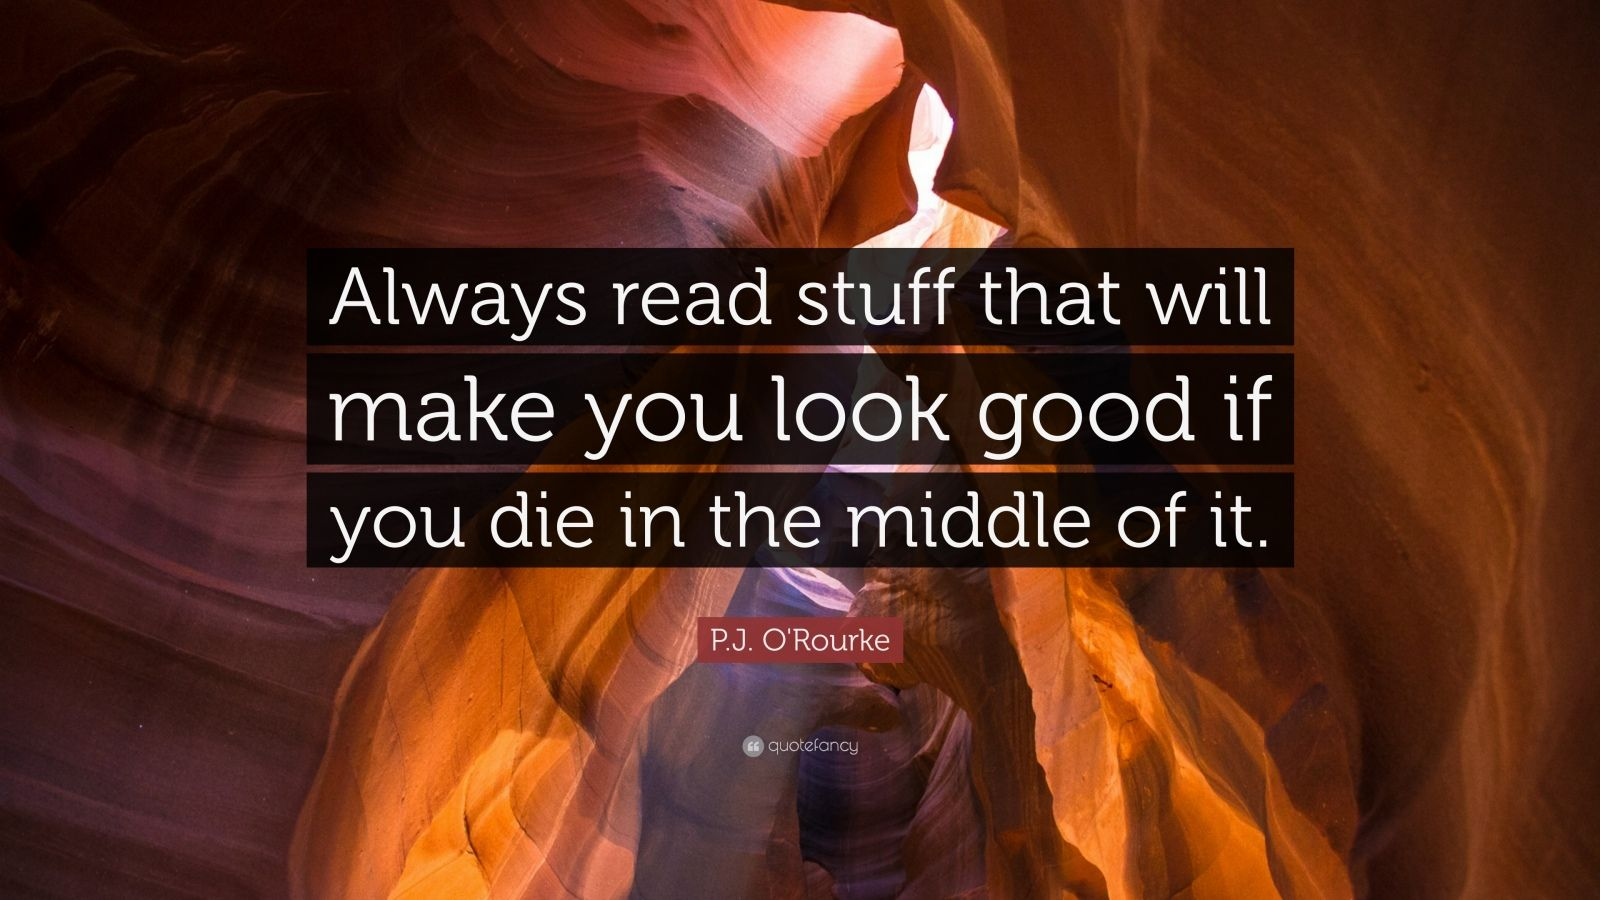 """P.J. O'Rourke Quote: """"Always read stuff that will make you look good if you die in the middle of it."""""""